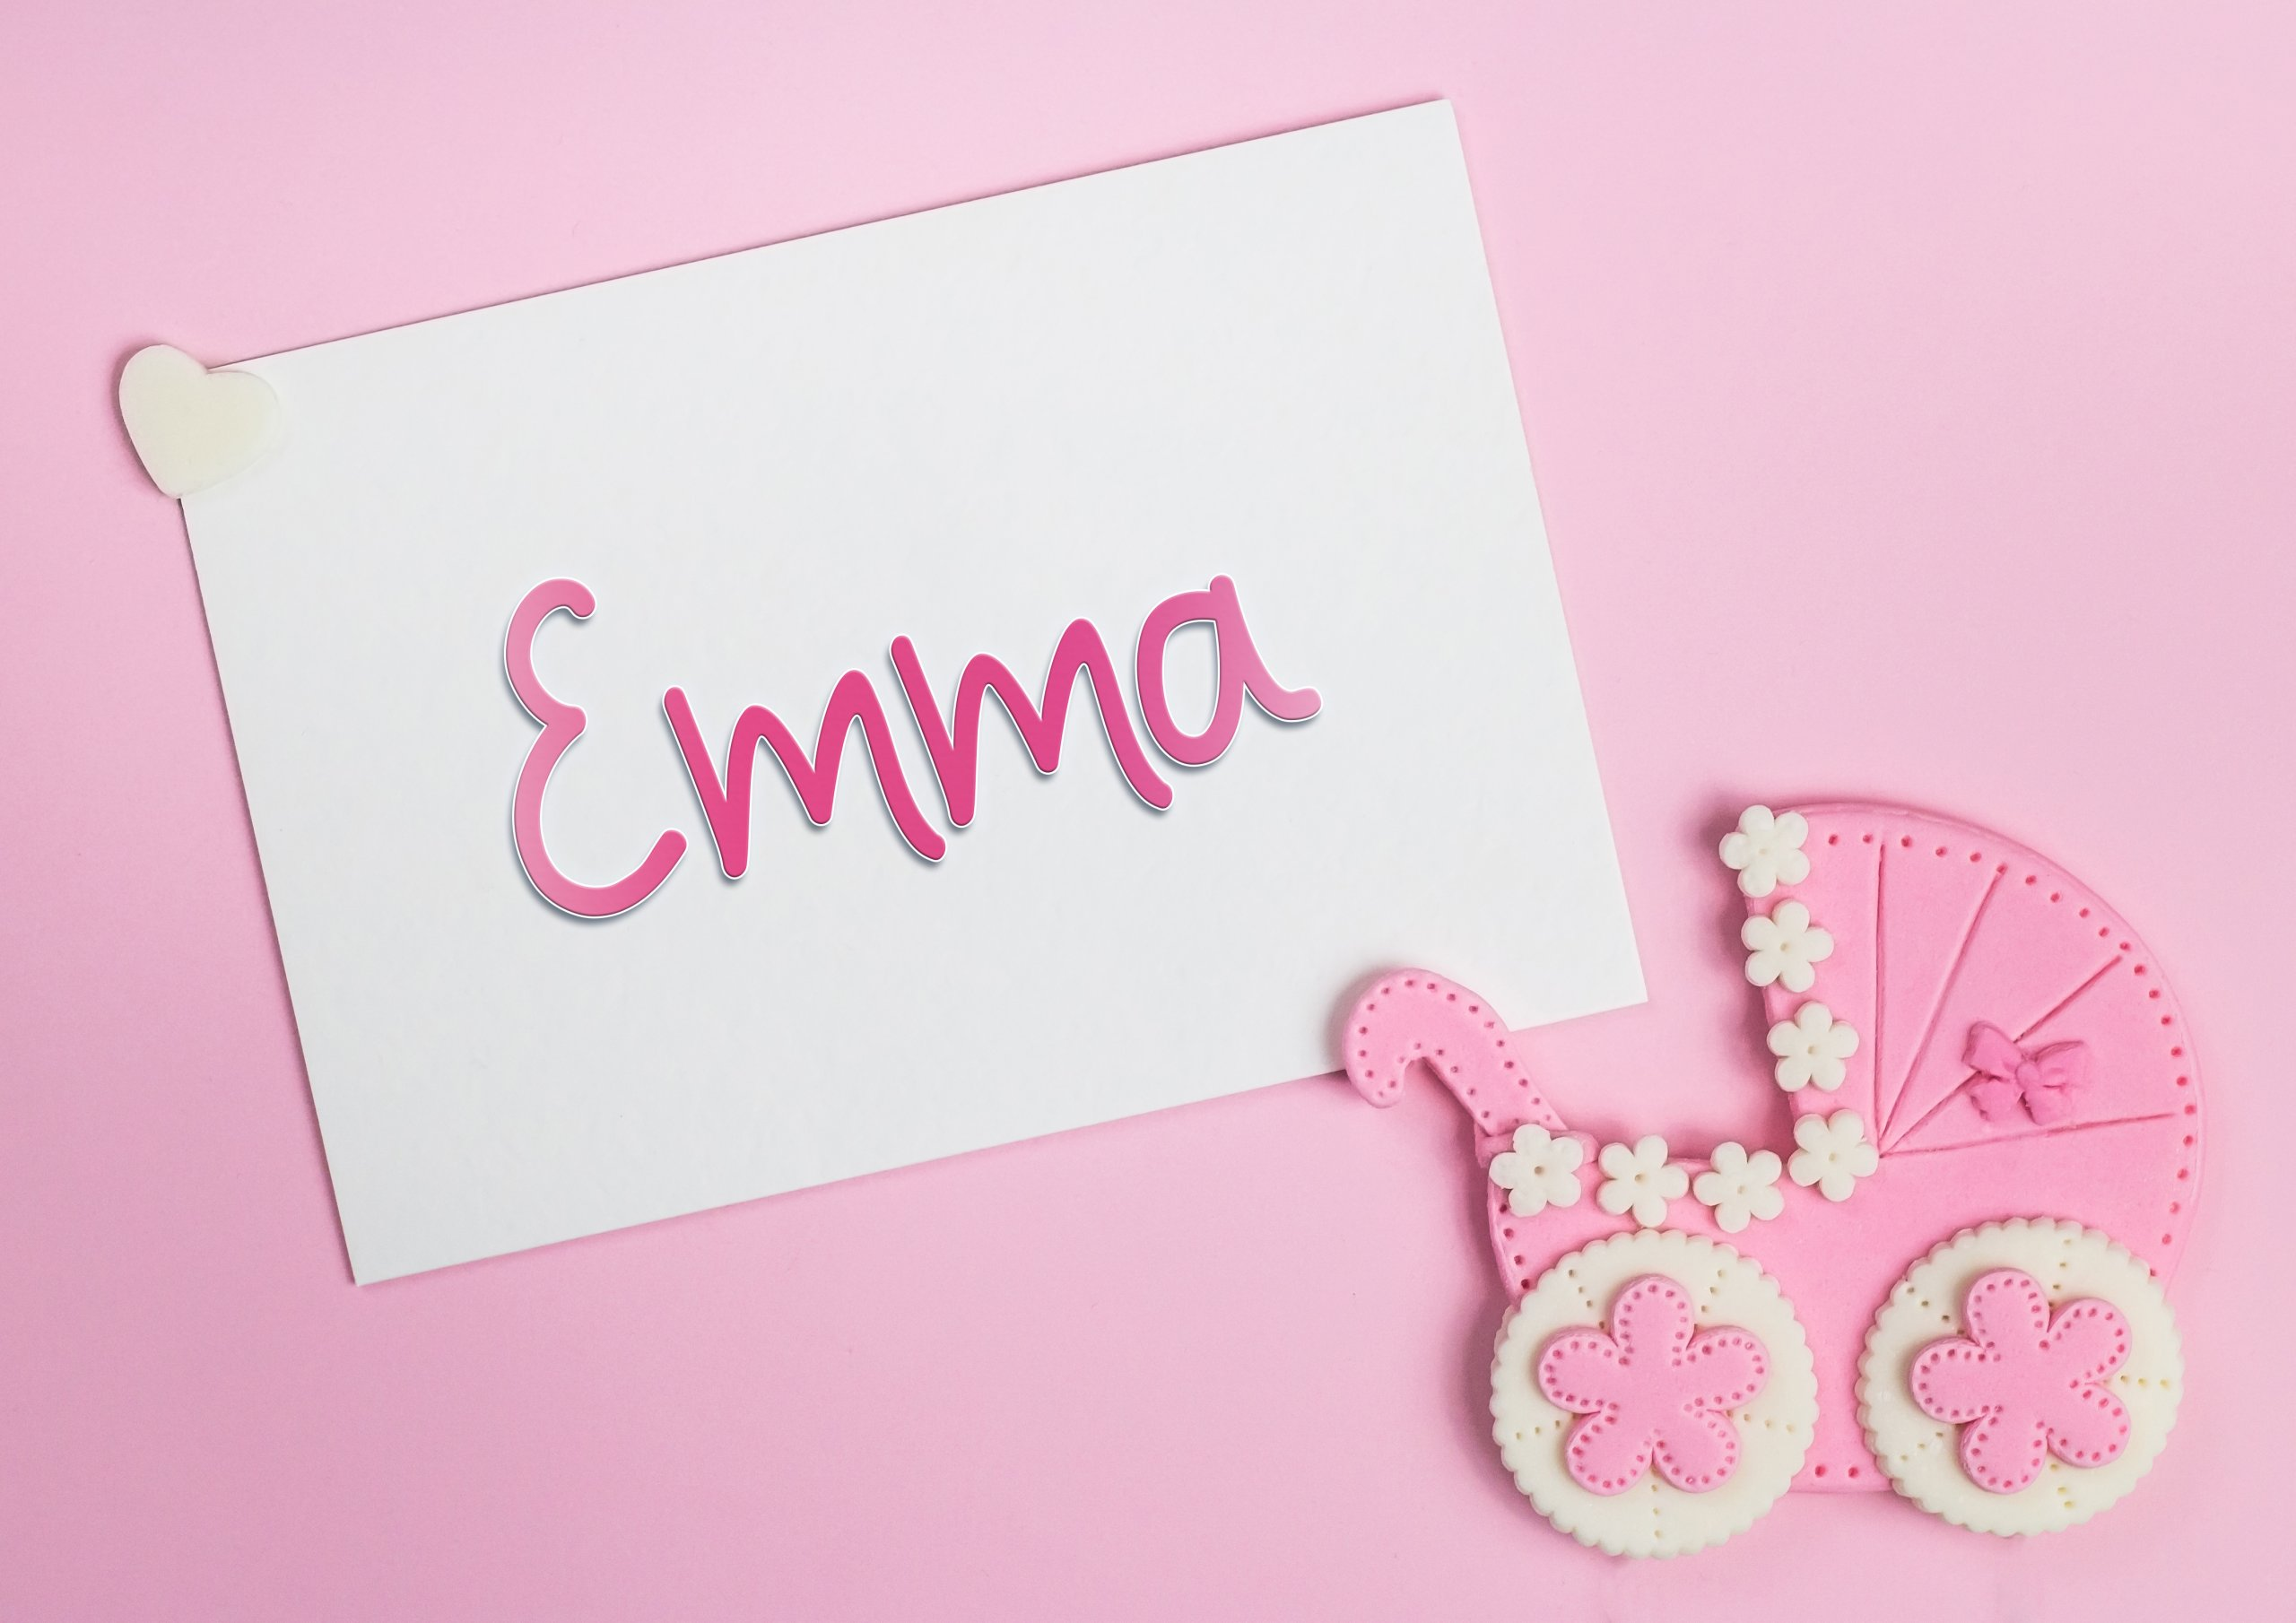 emma meaning